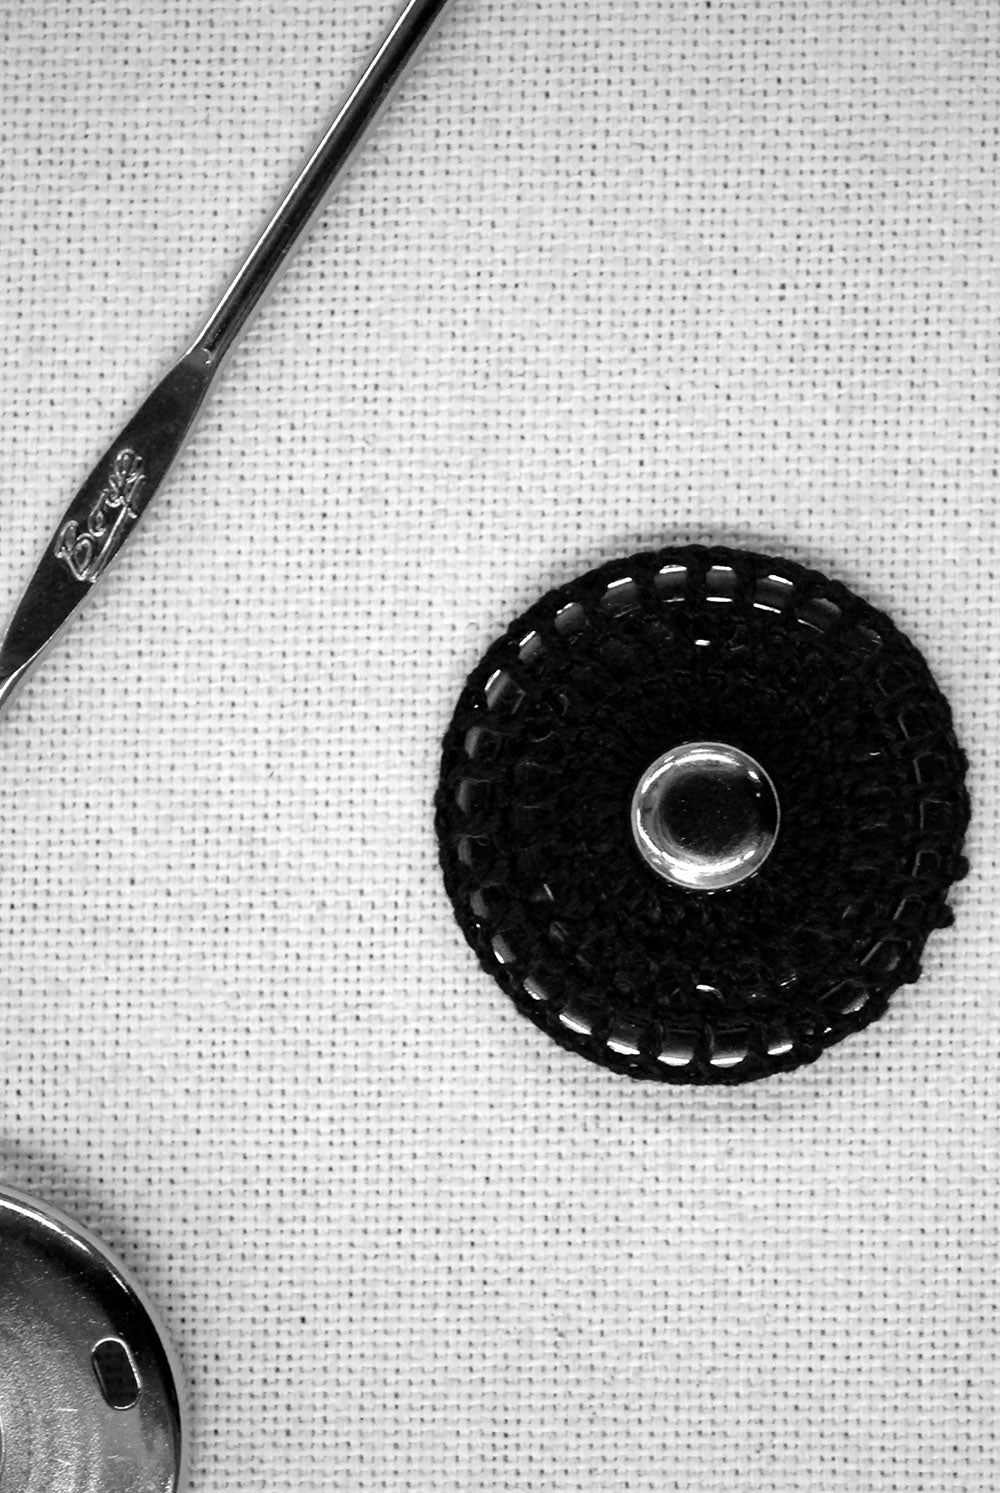 The School of Making Snaps Hand-Sewn Snaps for DIY Projects